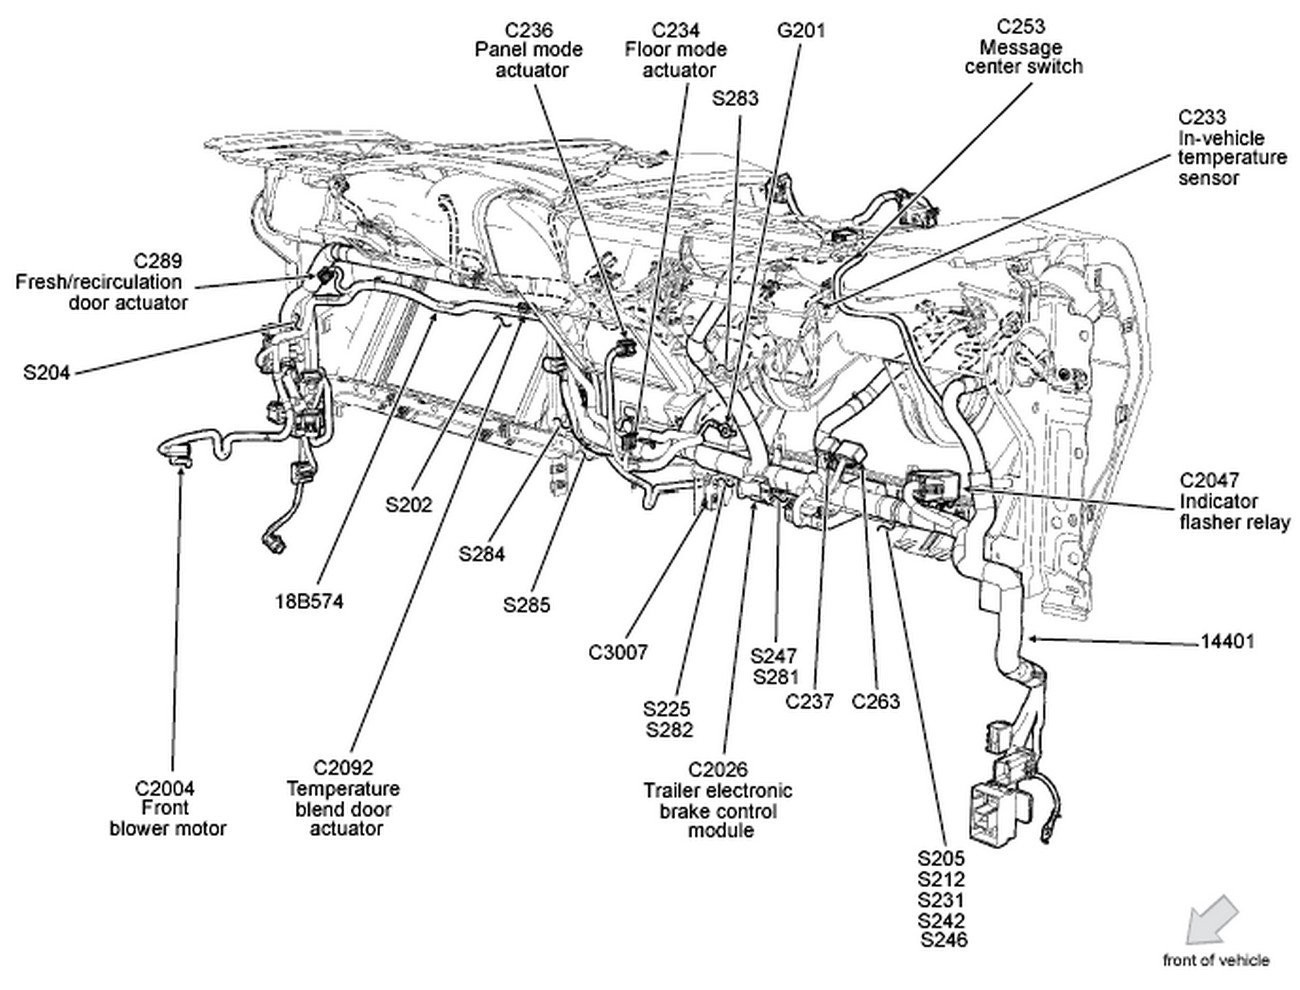 2005 ford 5.4 Engine Wiring Harness Diagram ford 150 4 6l Engine Diagram Wiring Diagram Of 2005 ford 5.4 Engine Wiring Harness Diagram